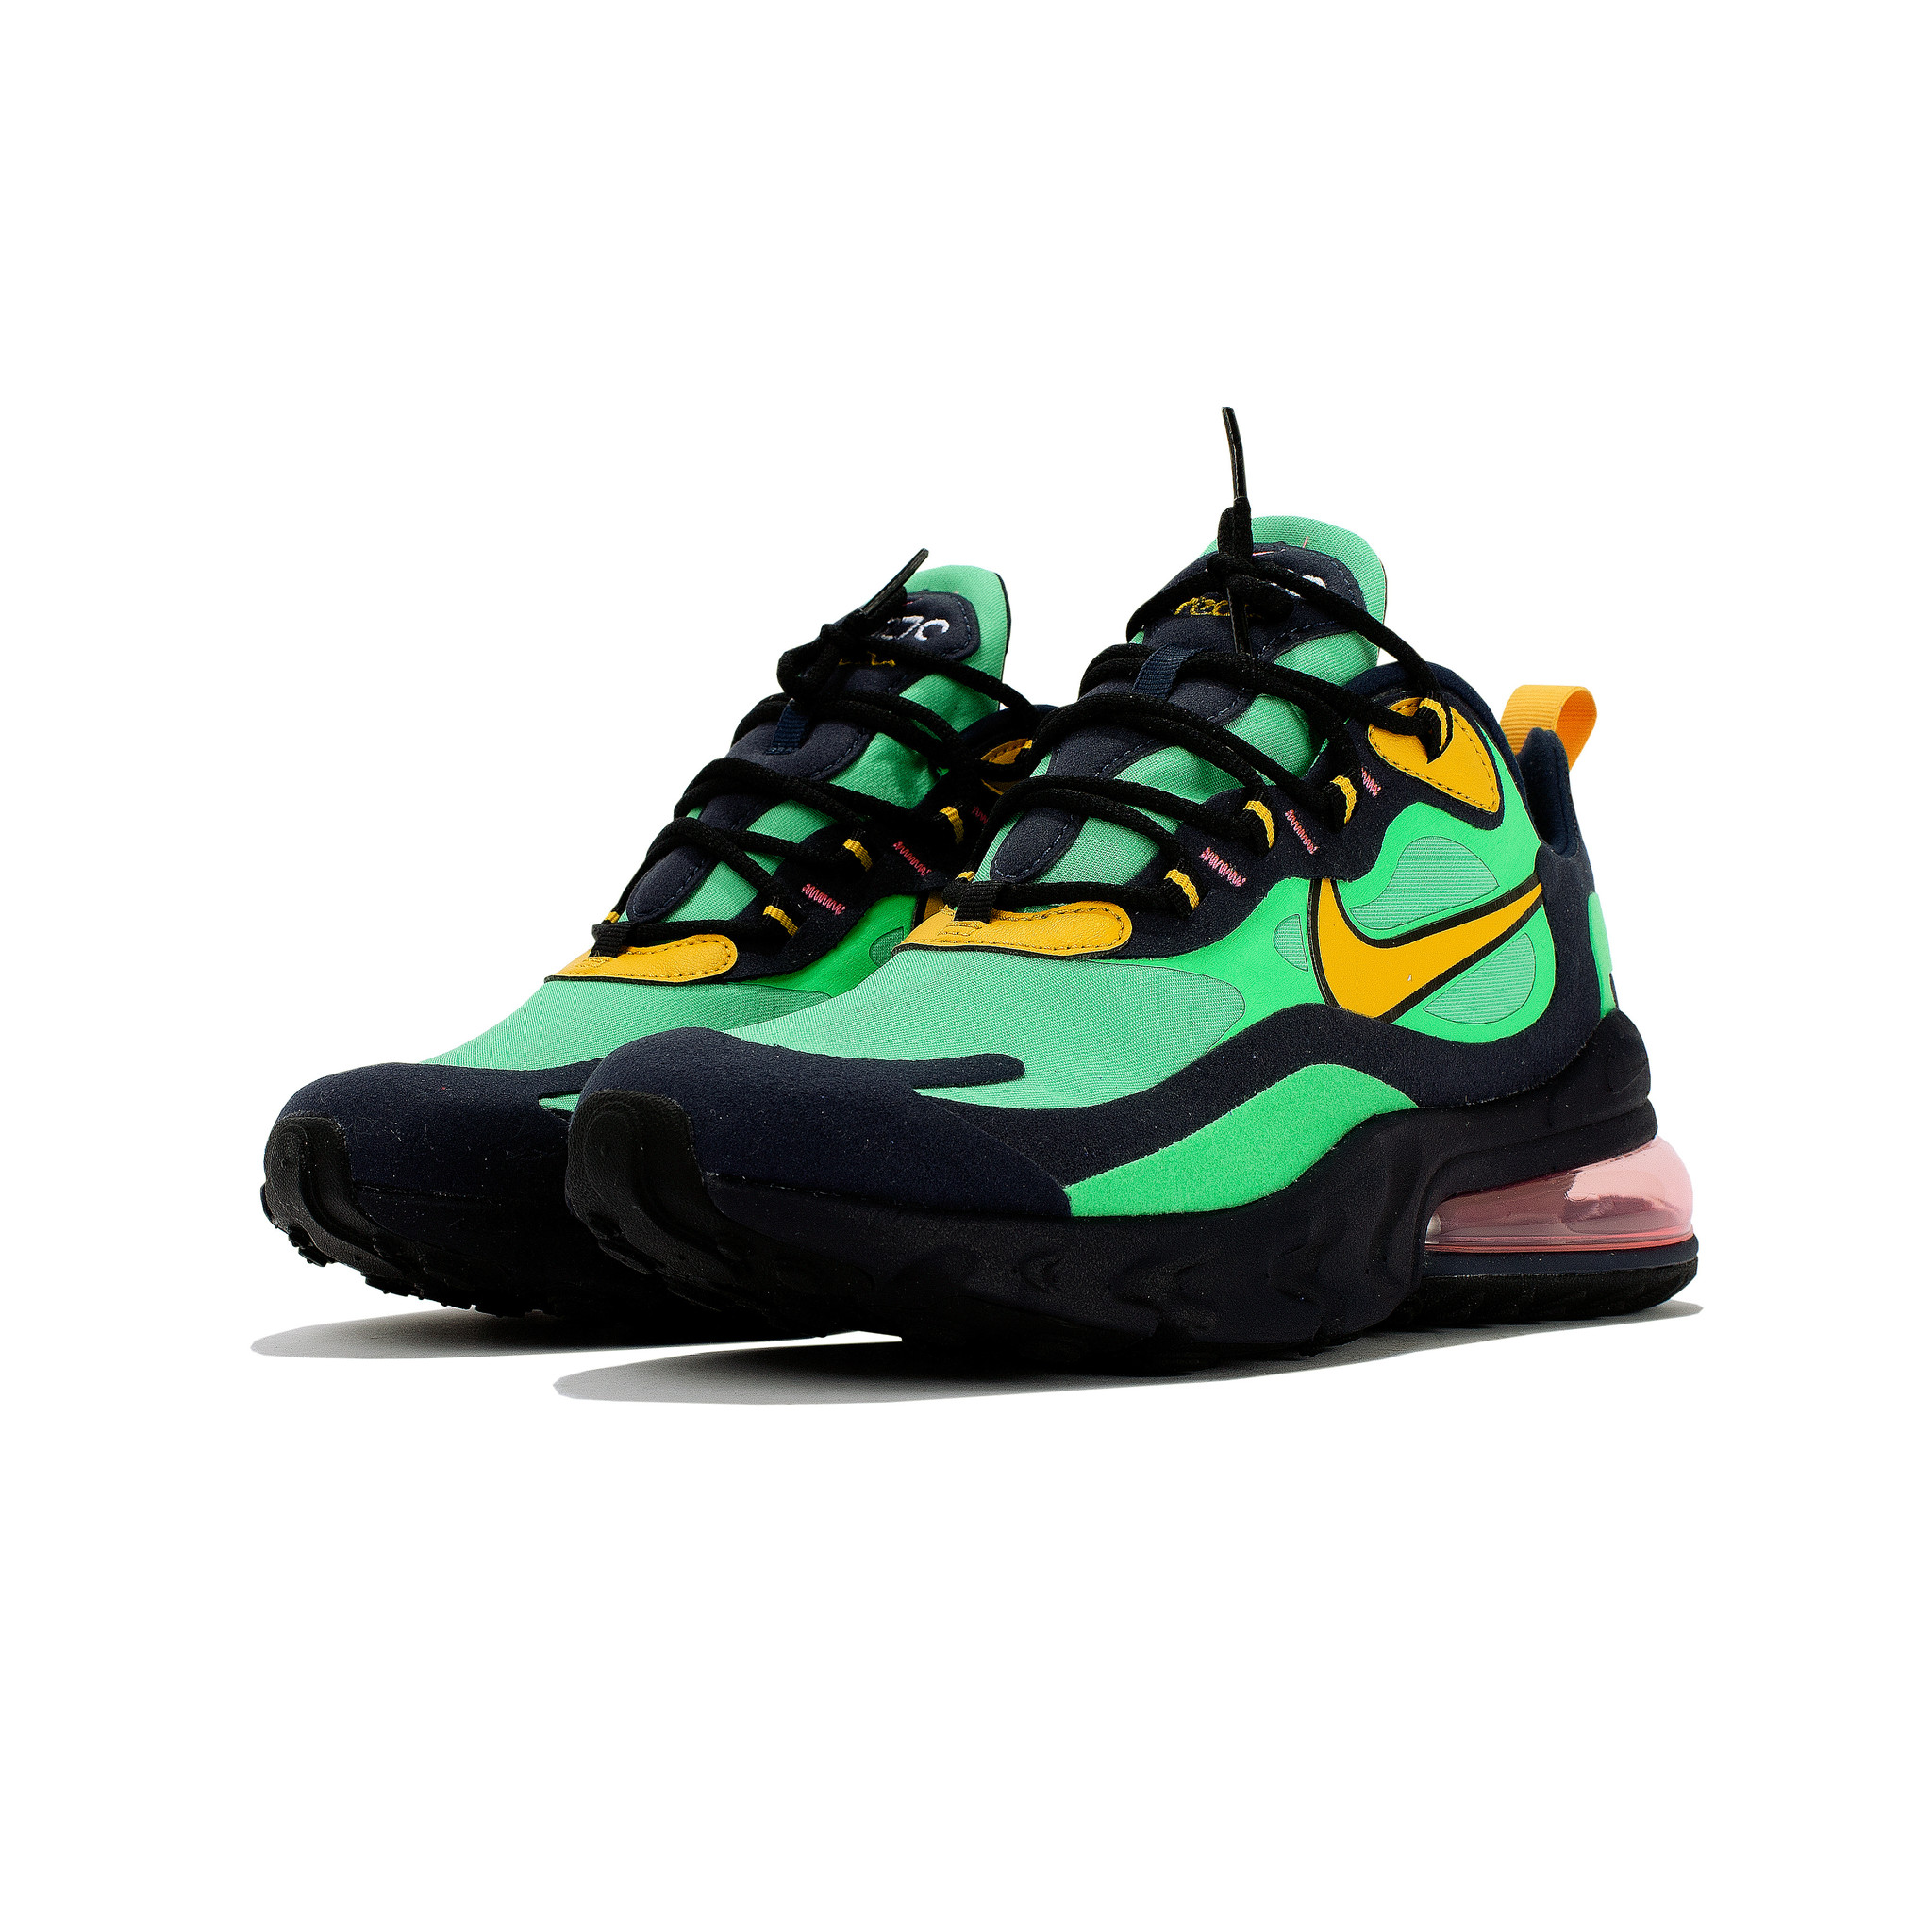 low priced 36627 5afb0 NIKE AIR MAX 270 REACT AO4971 300